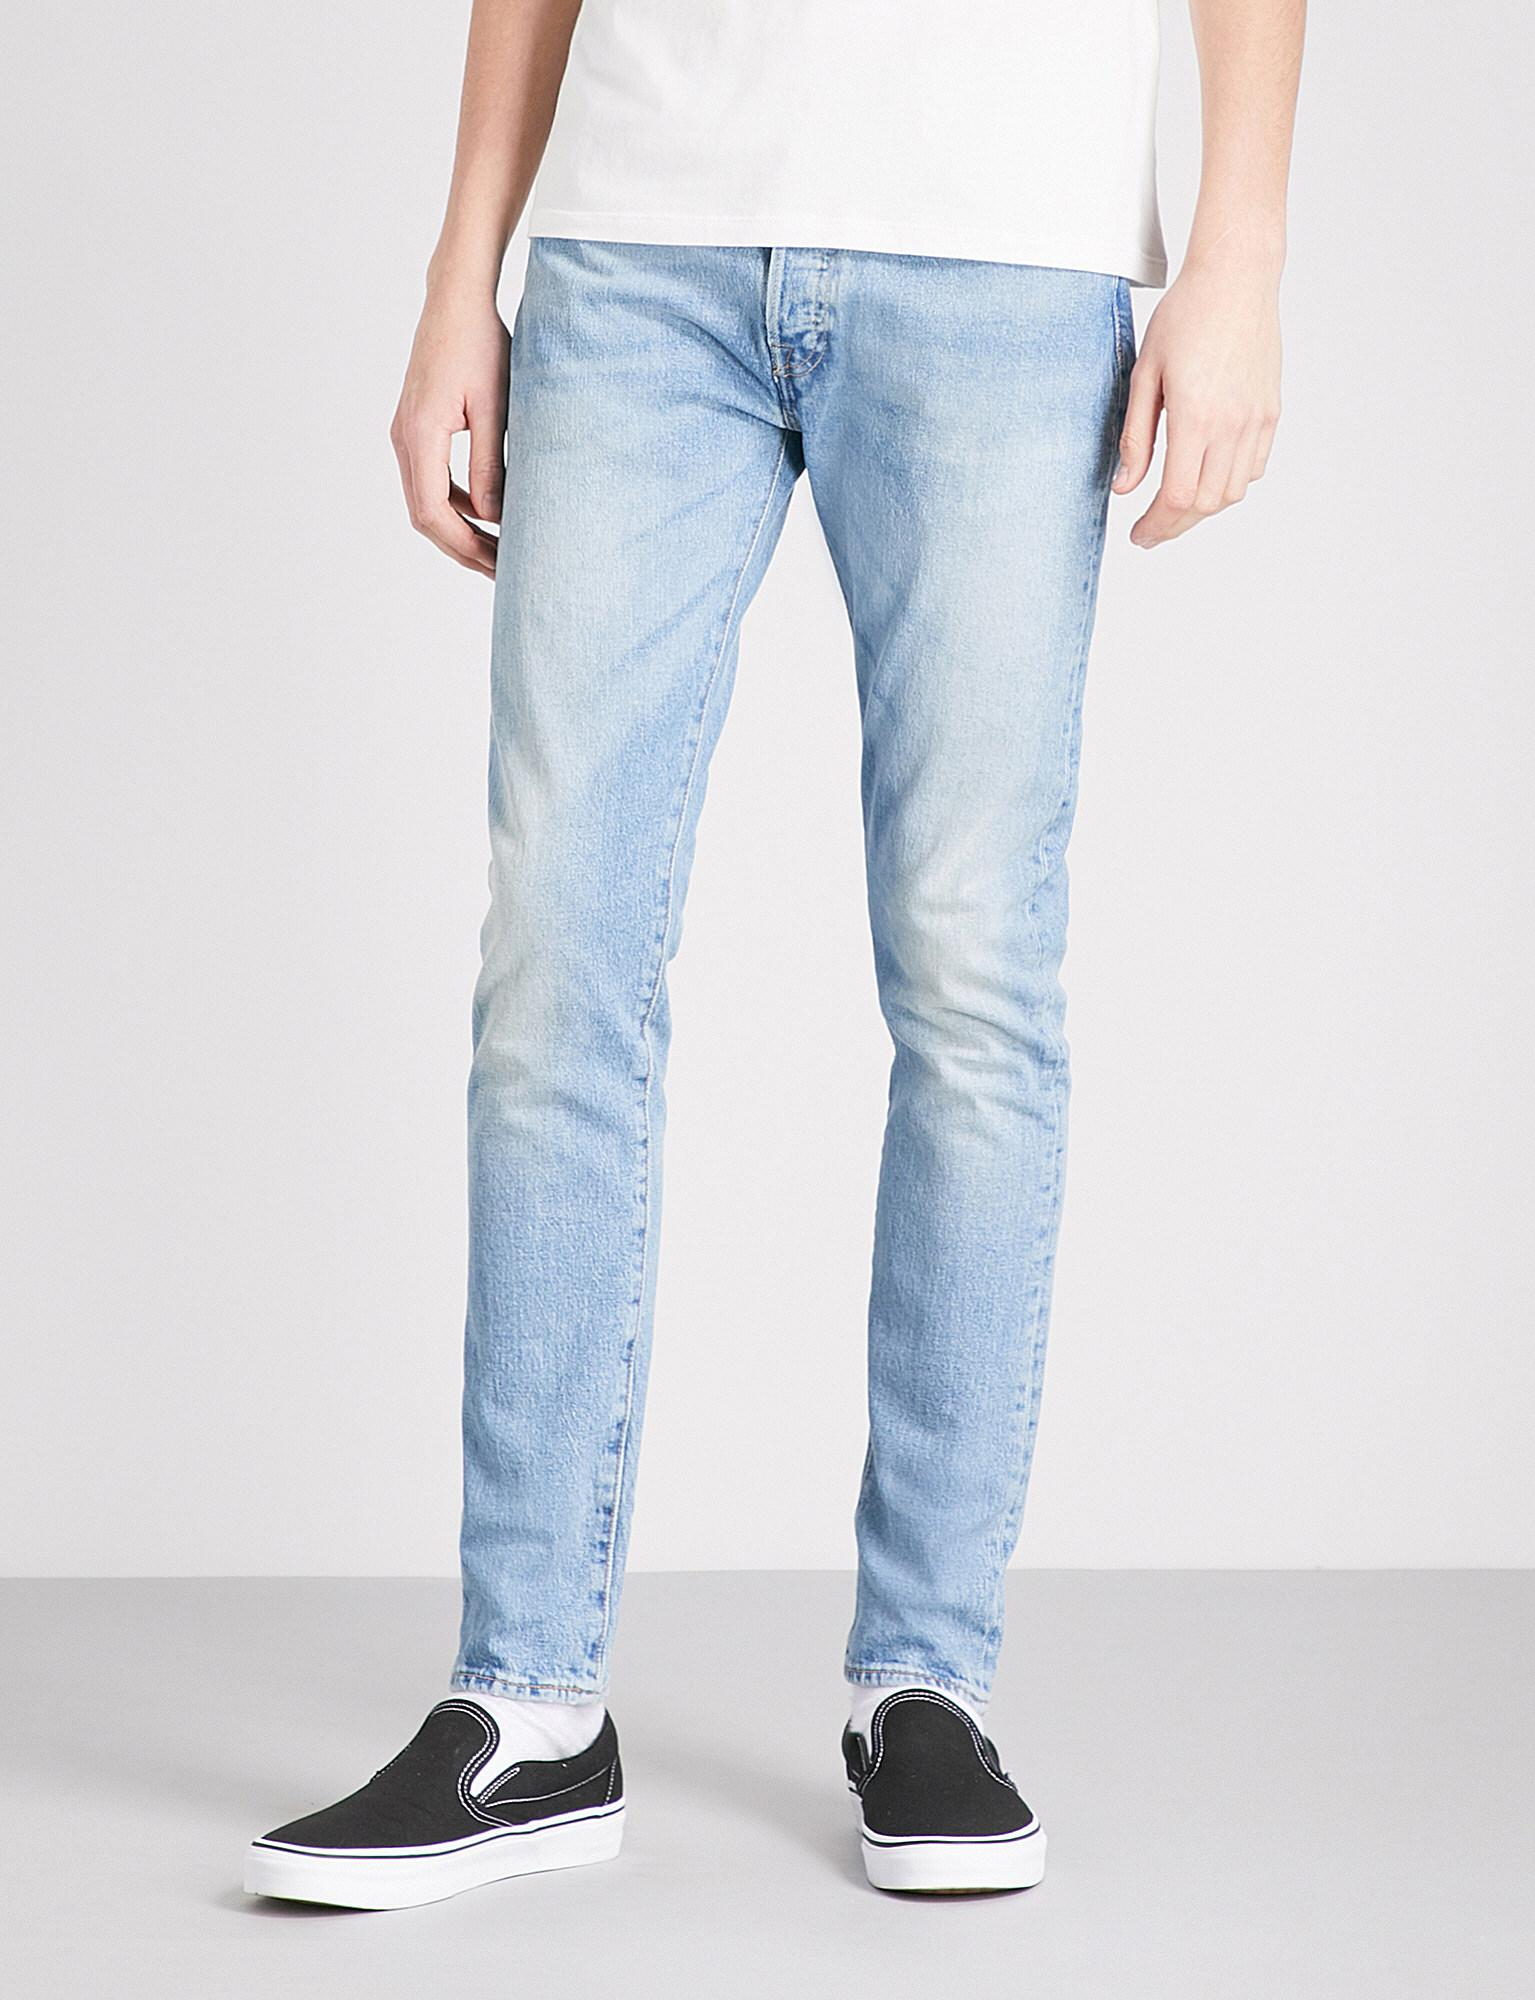 3122631ab5ab Levi's 501 Slim-fit Skinny Jeans in Blue for Men - Lyst